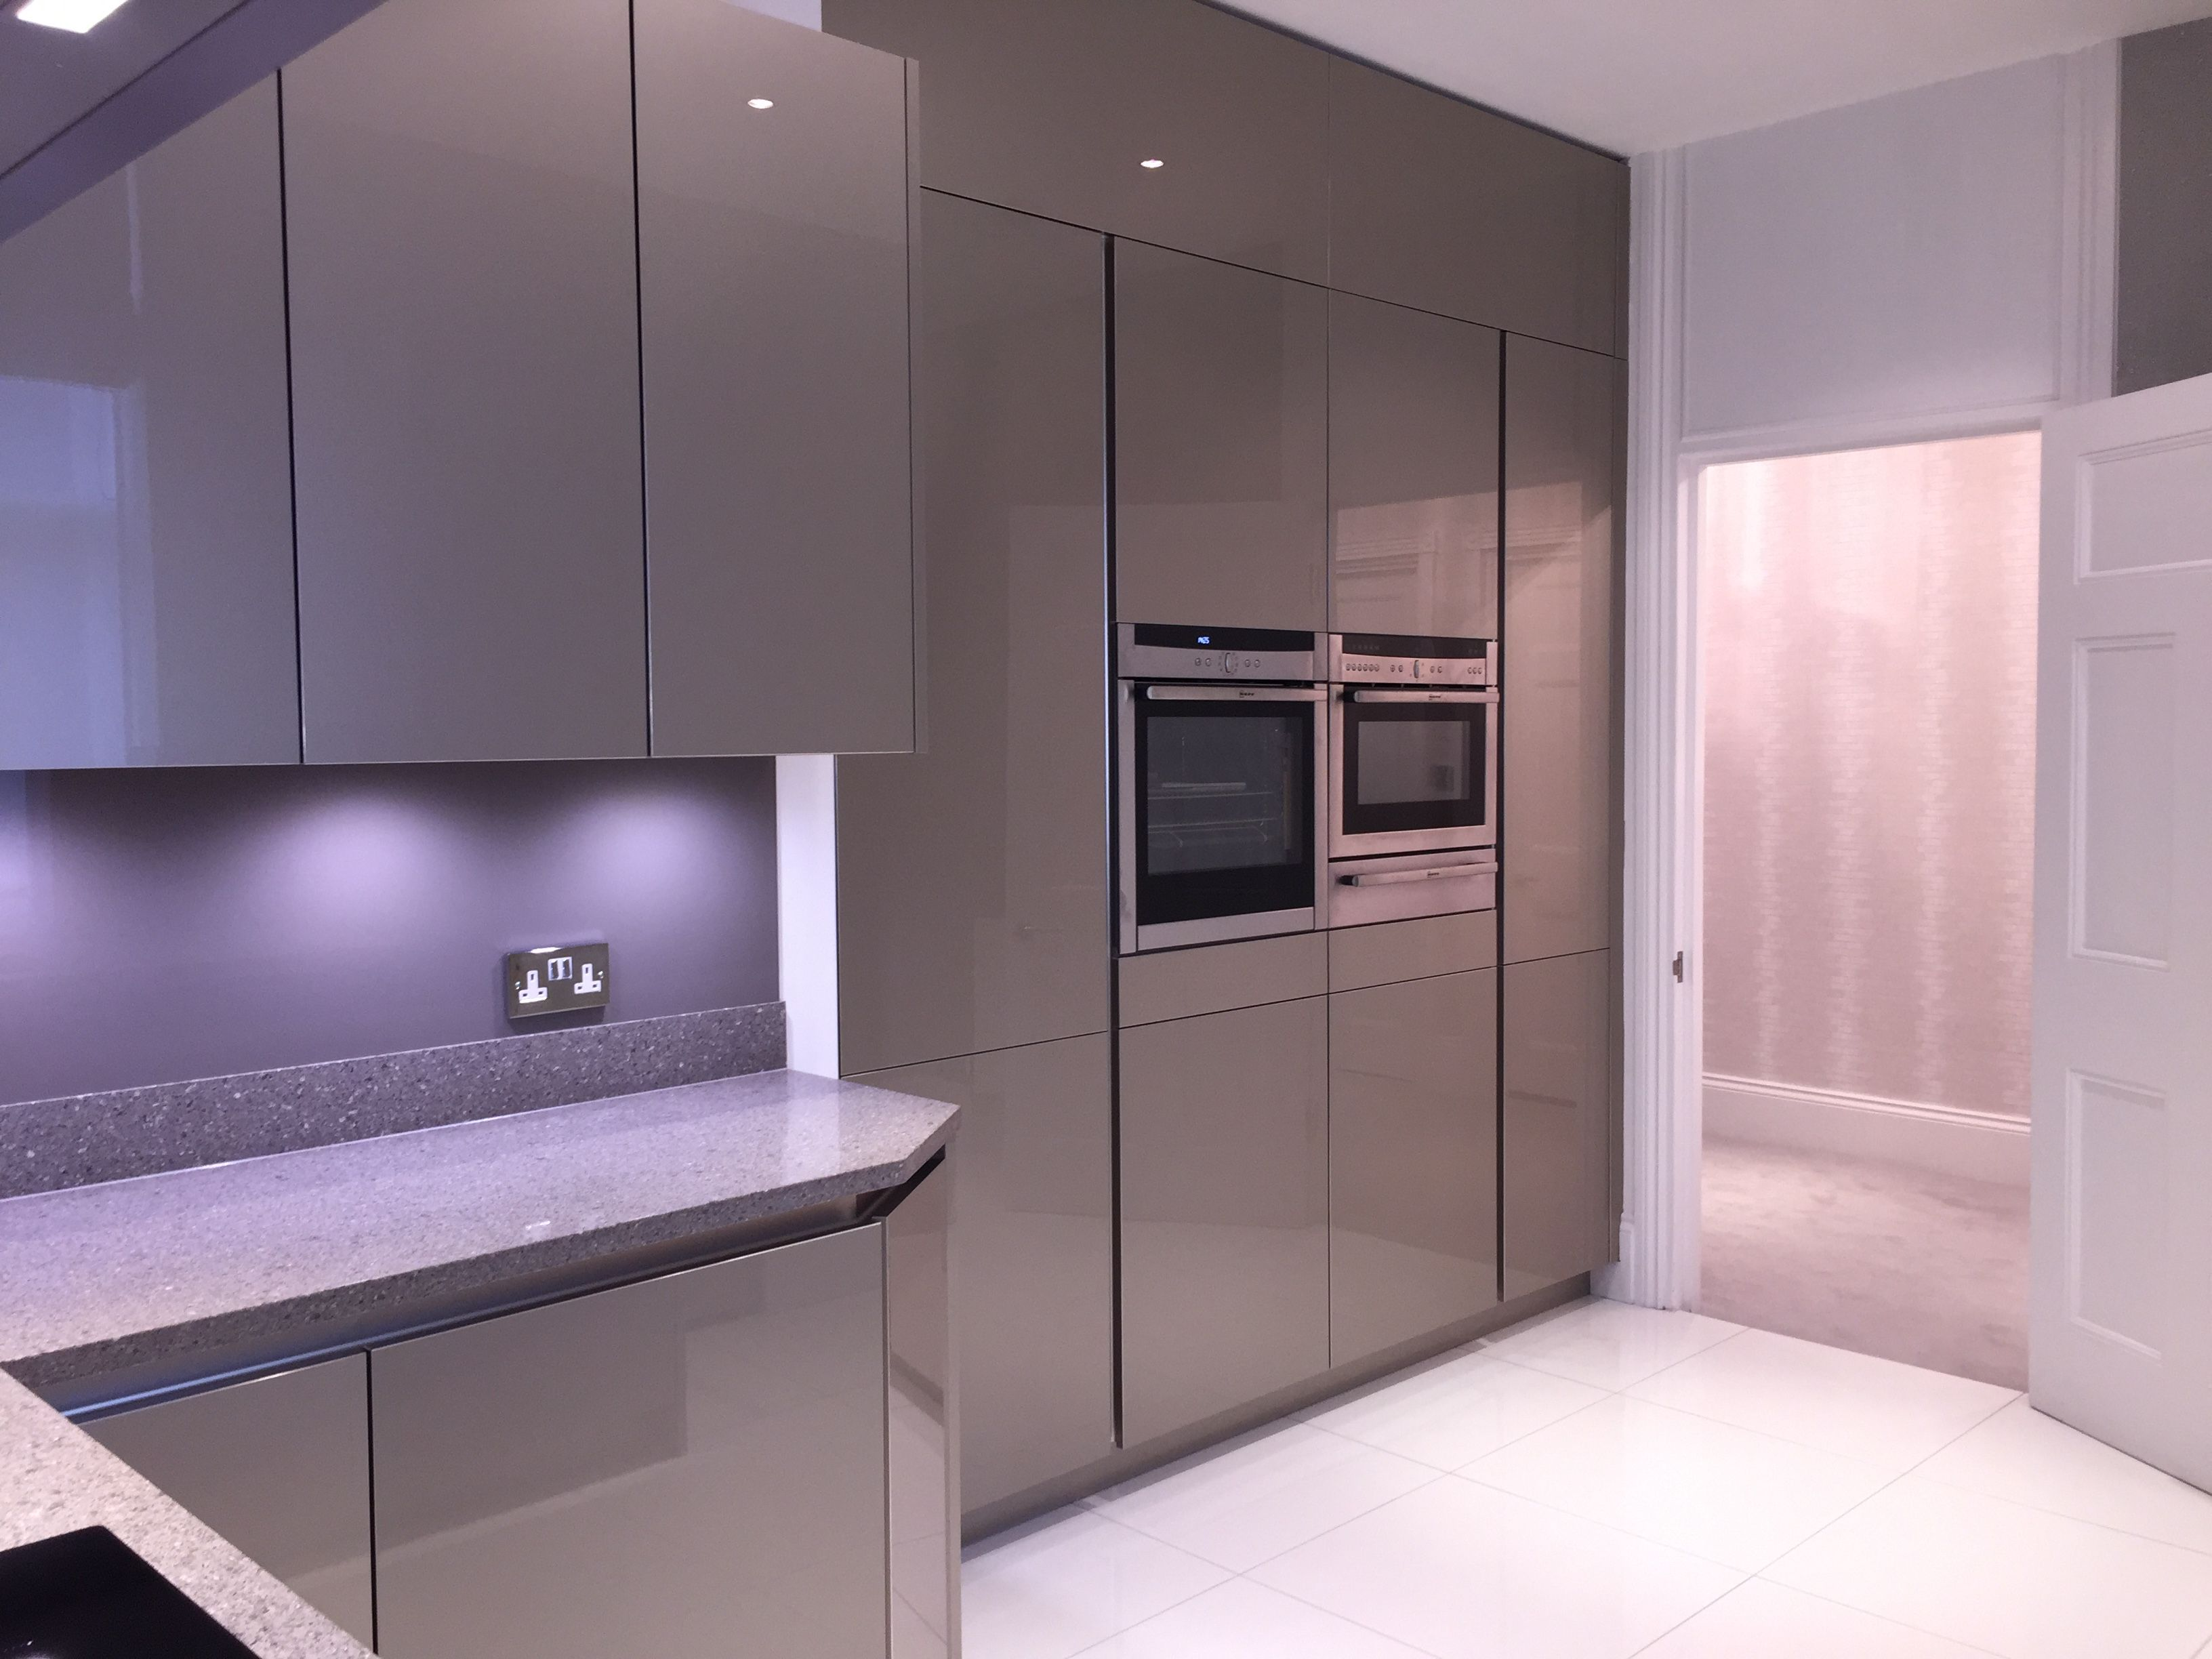 High Gloss Gray Cabinets from our Range Bauformat | Grey ...